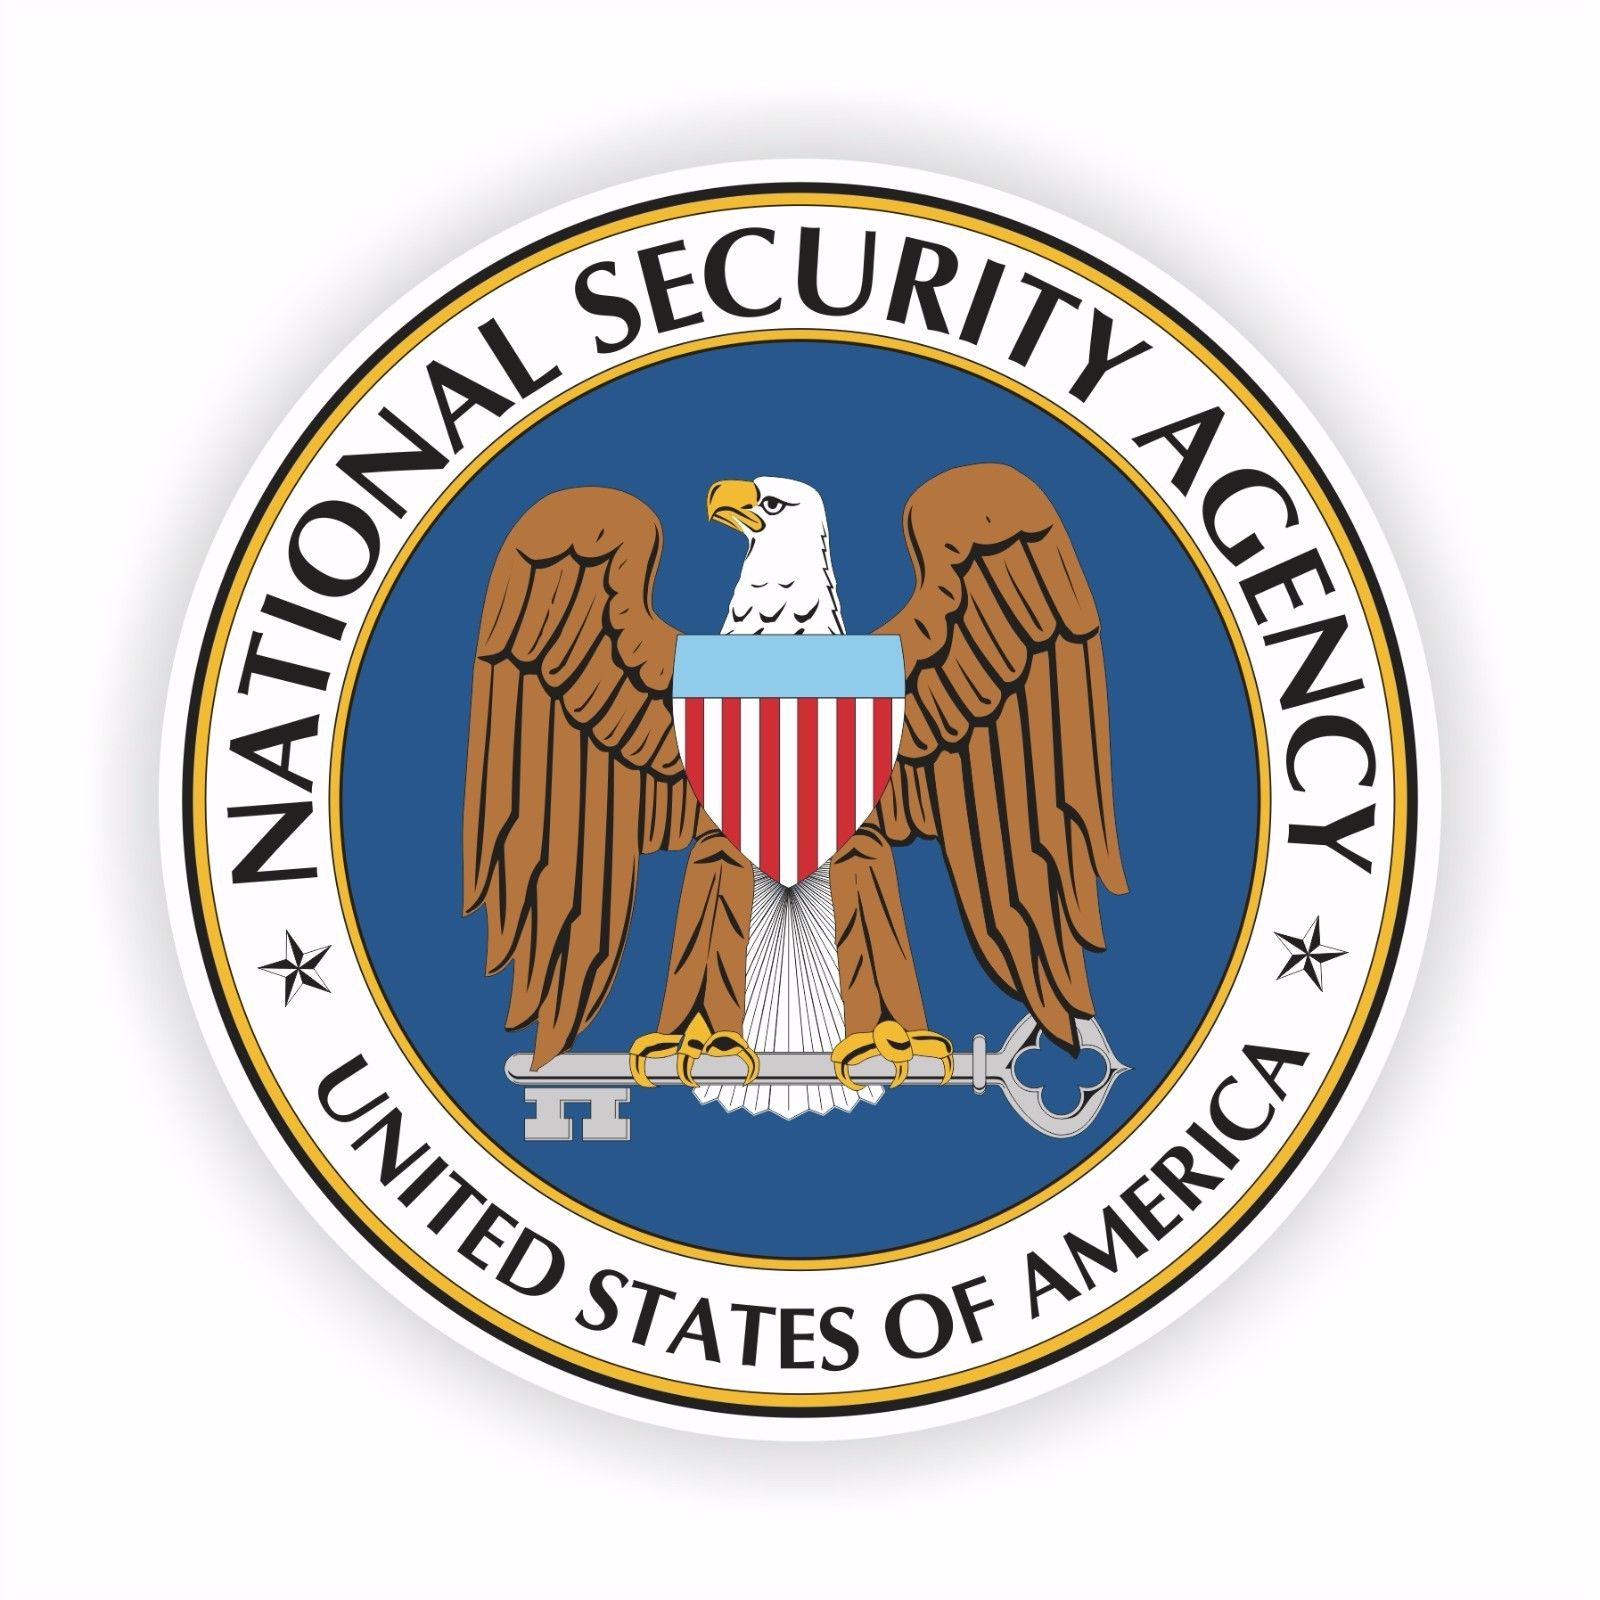 Leaked Document Appears to Show NSA Infiltrated Cryptos, Tor, VPN